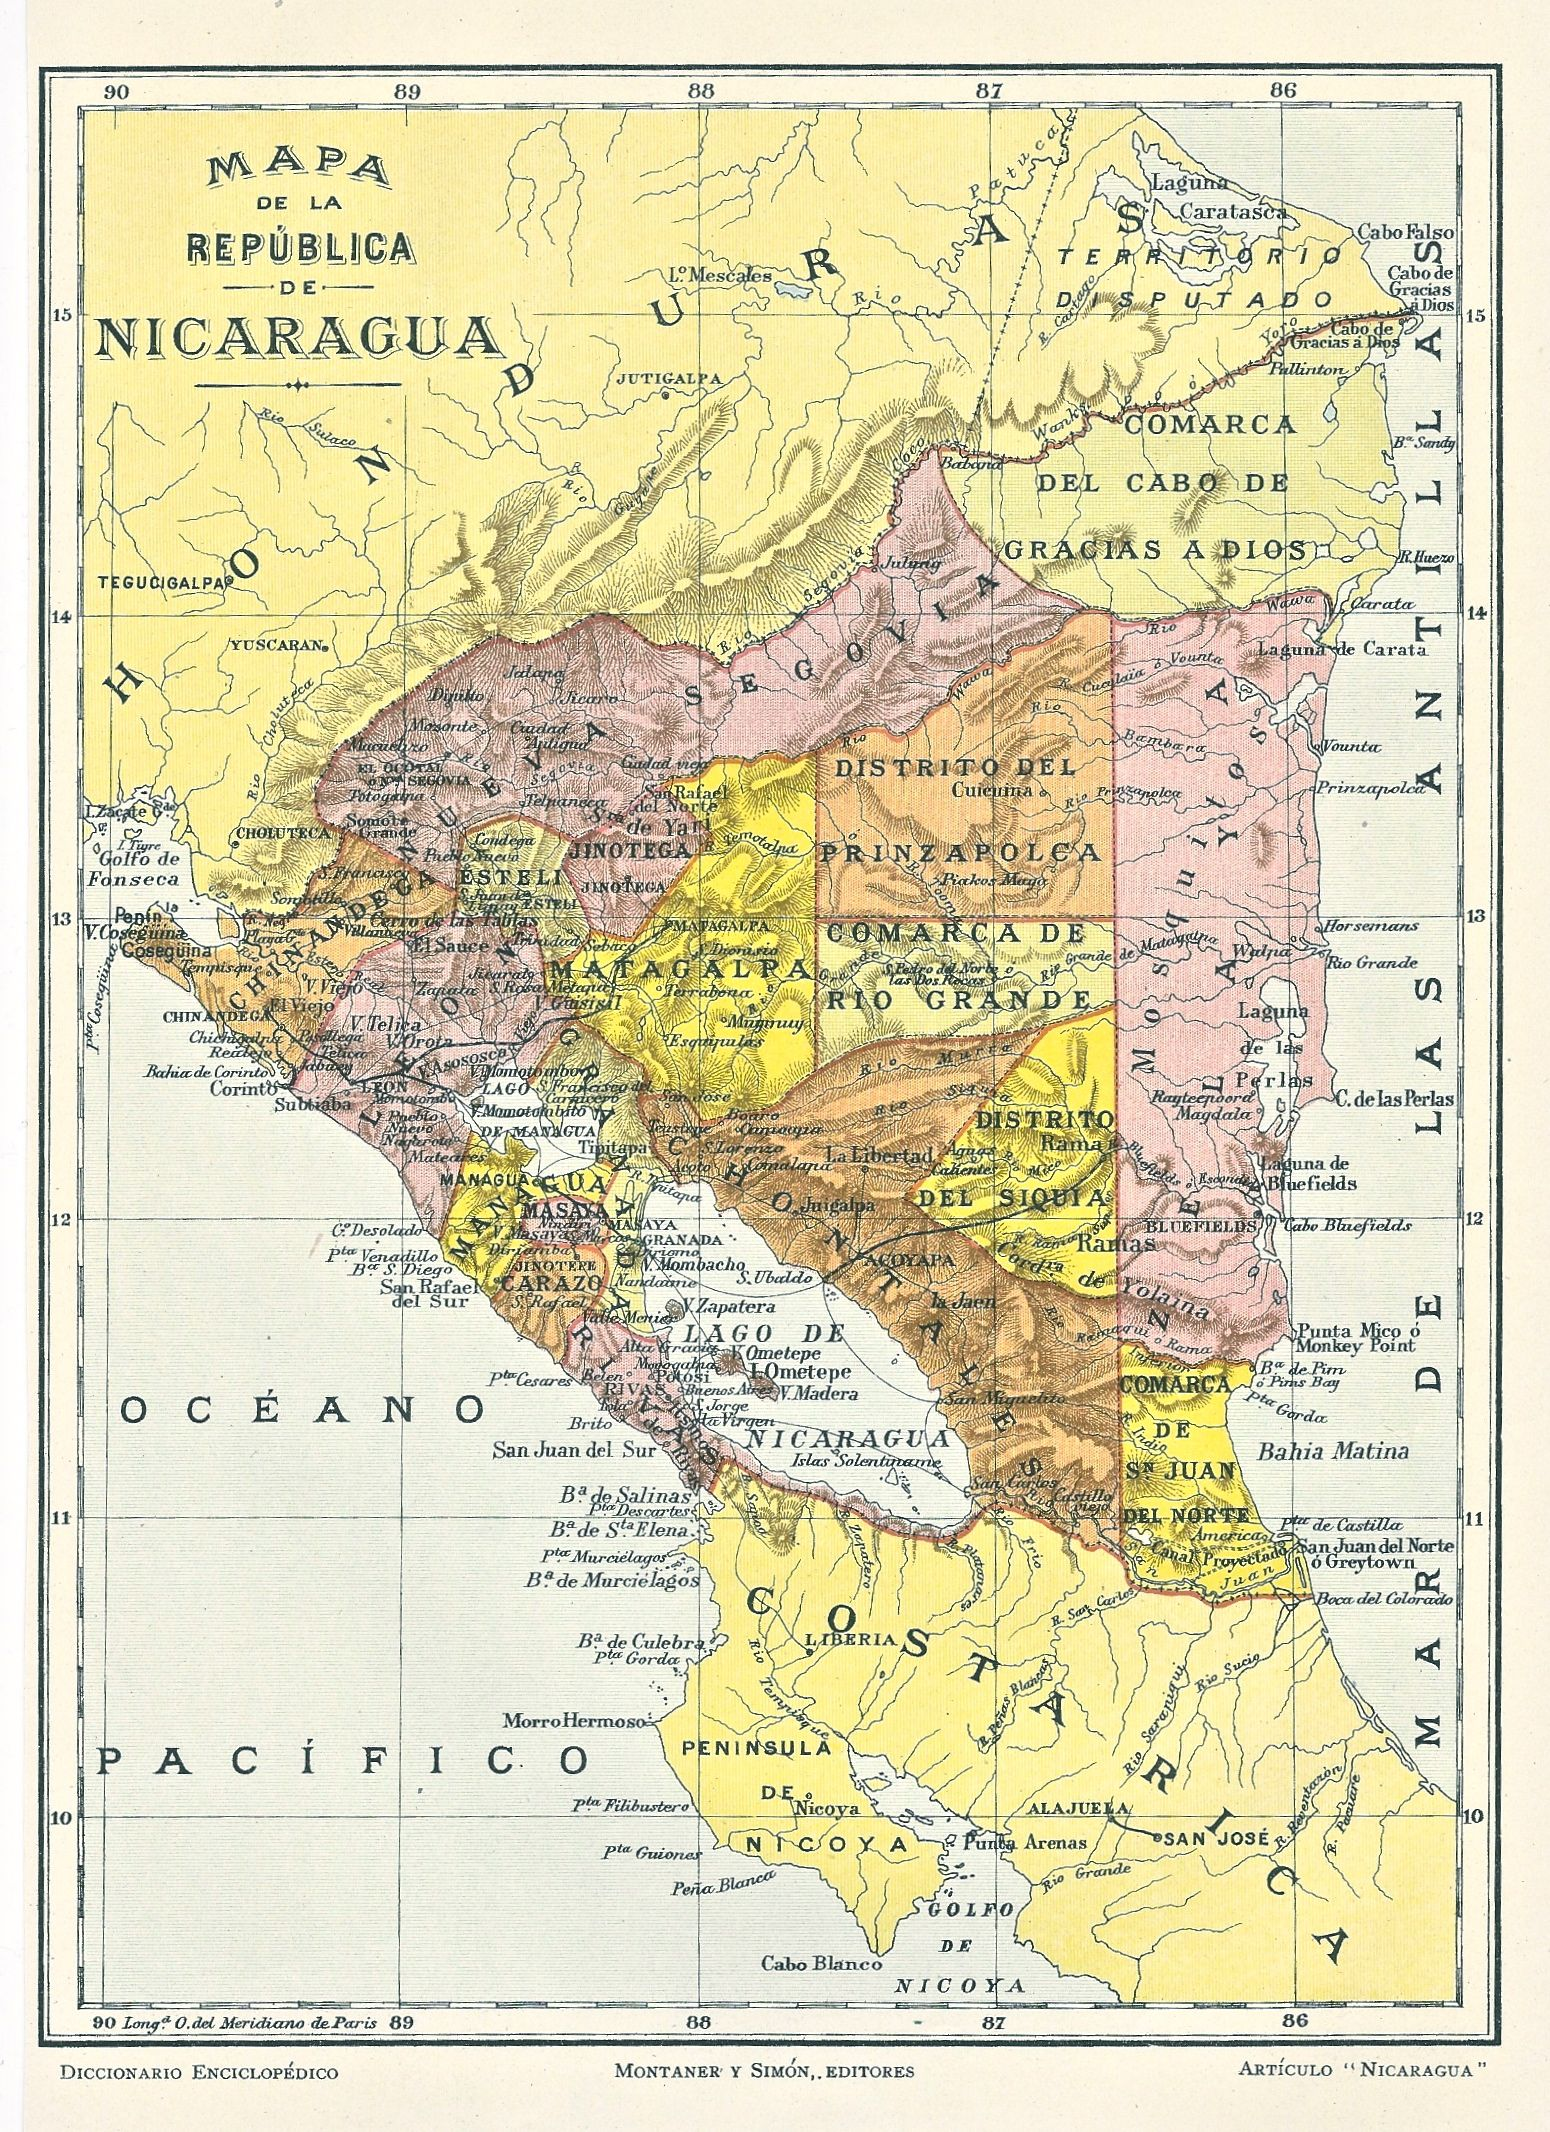 1914 Map of Nicaragua from the Diccionario Enciclopedico Hispano